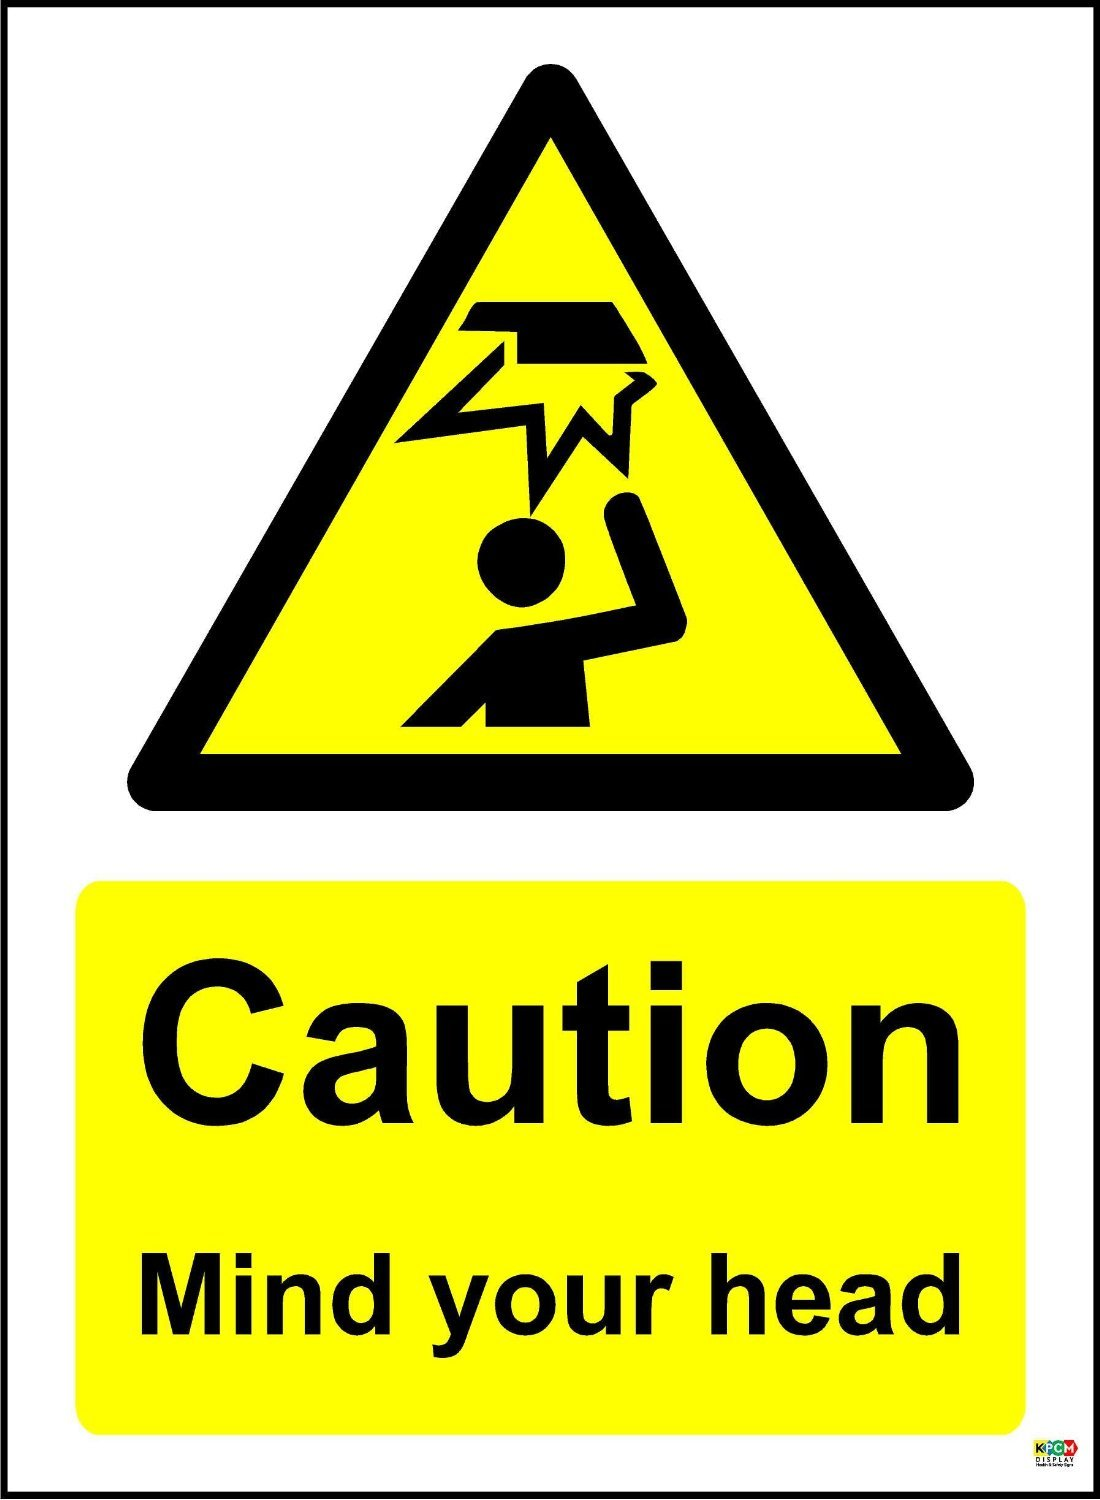 5 x CAUTION MIND YOUR HEAD SELF ADHESIVE STICKERS SAFETY SIGNS BUSINESS